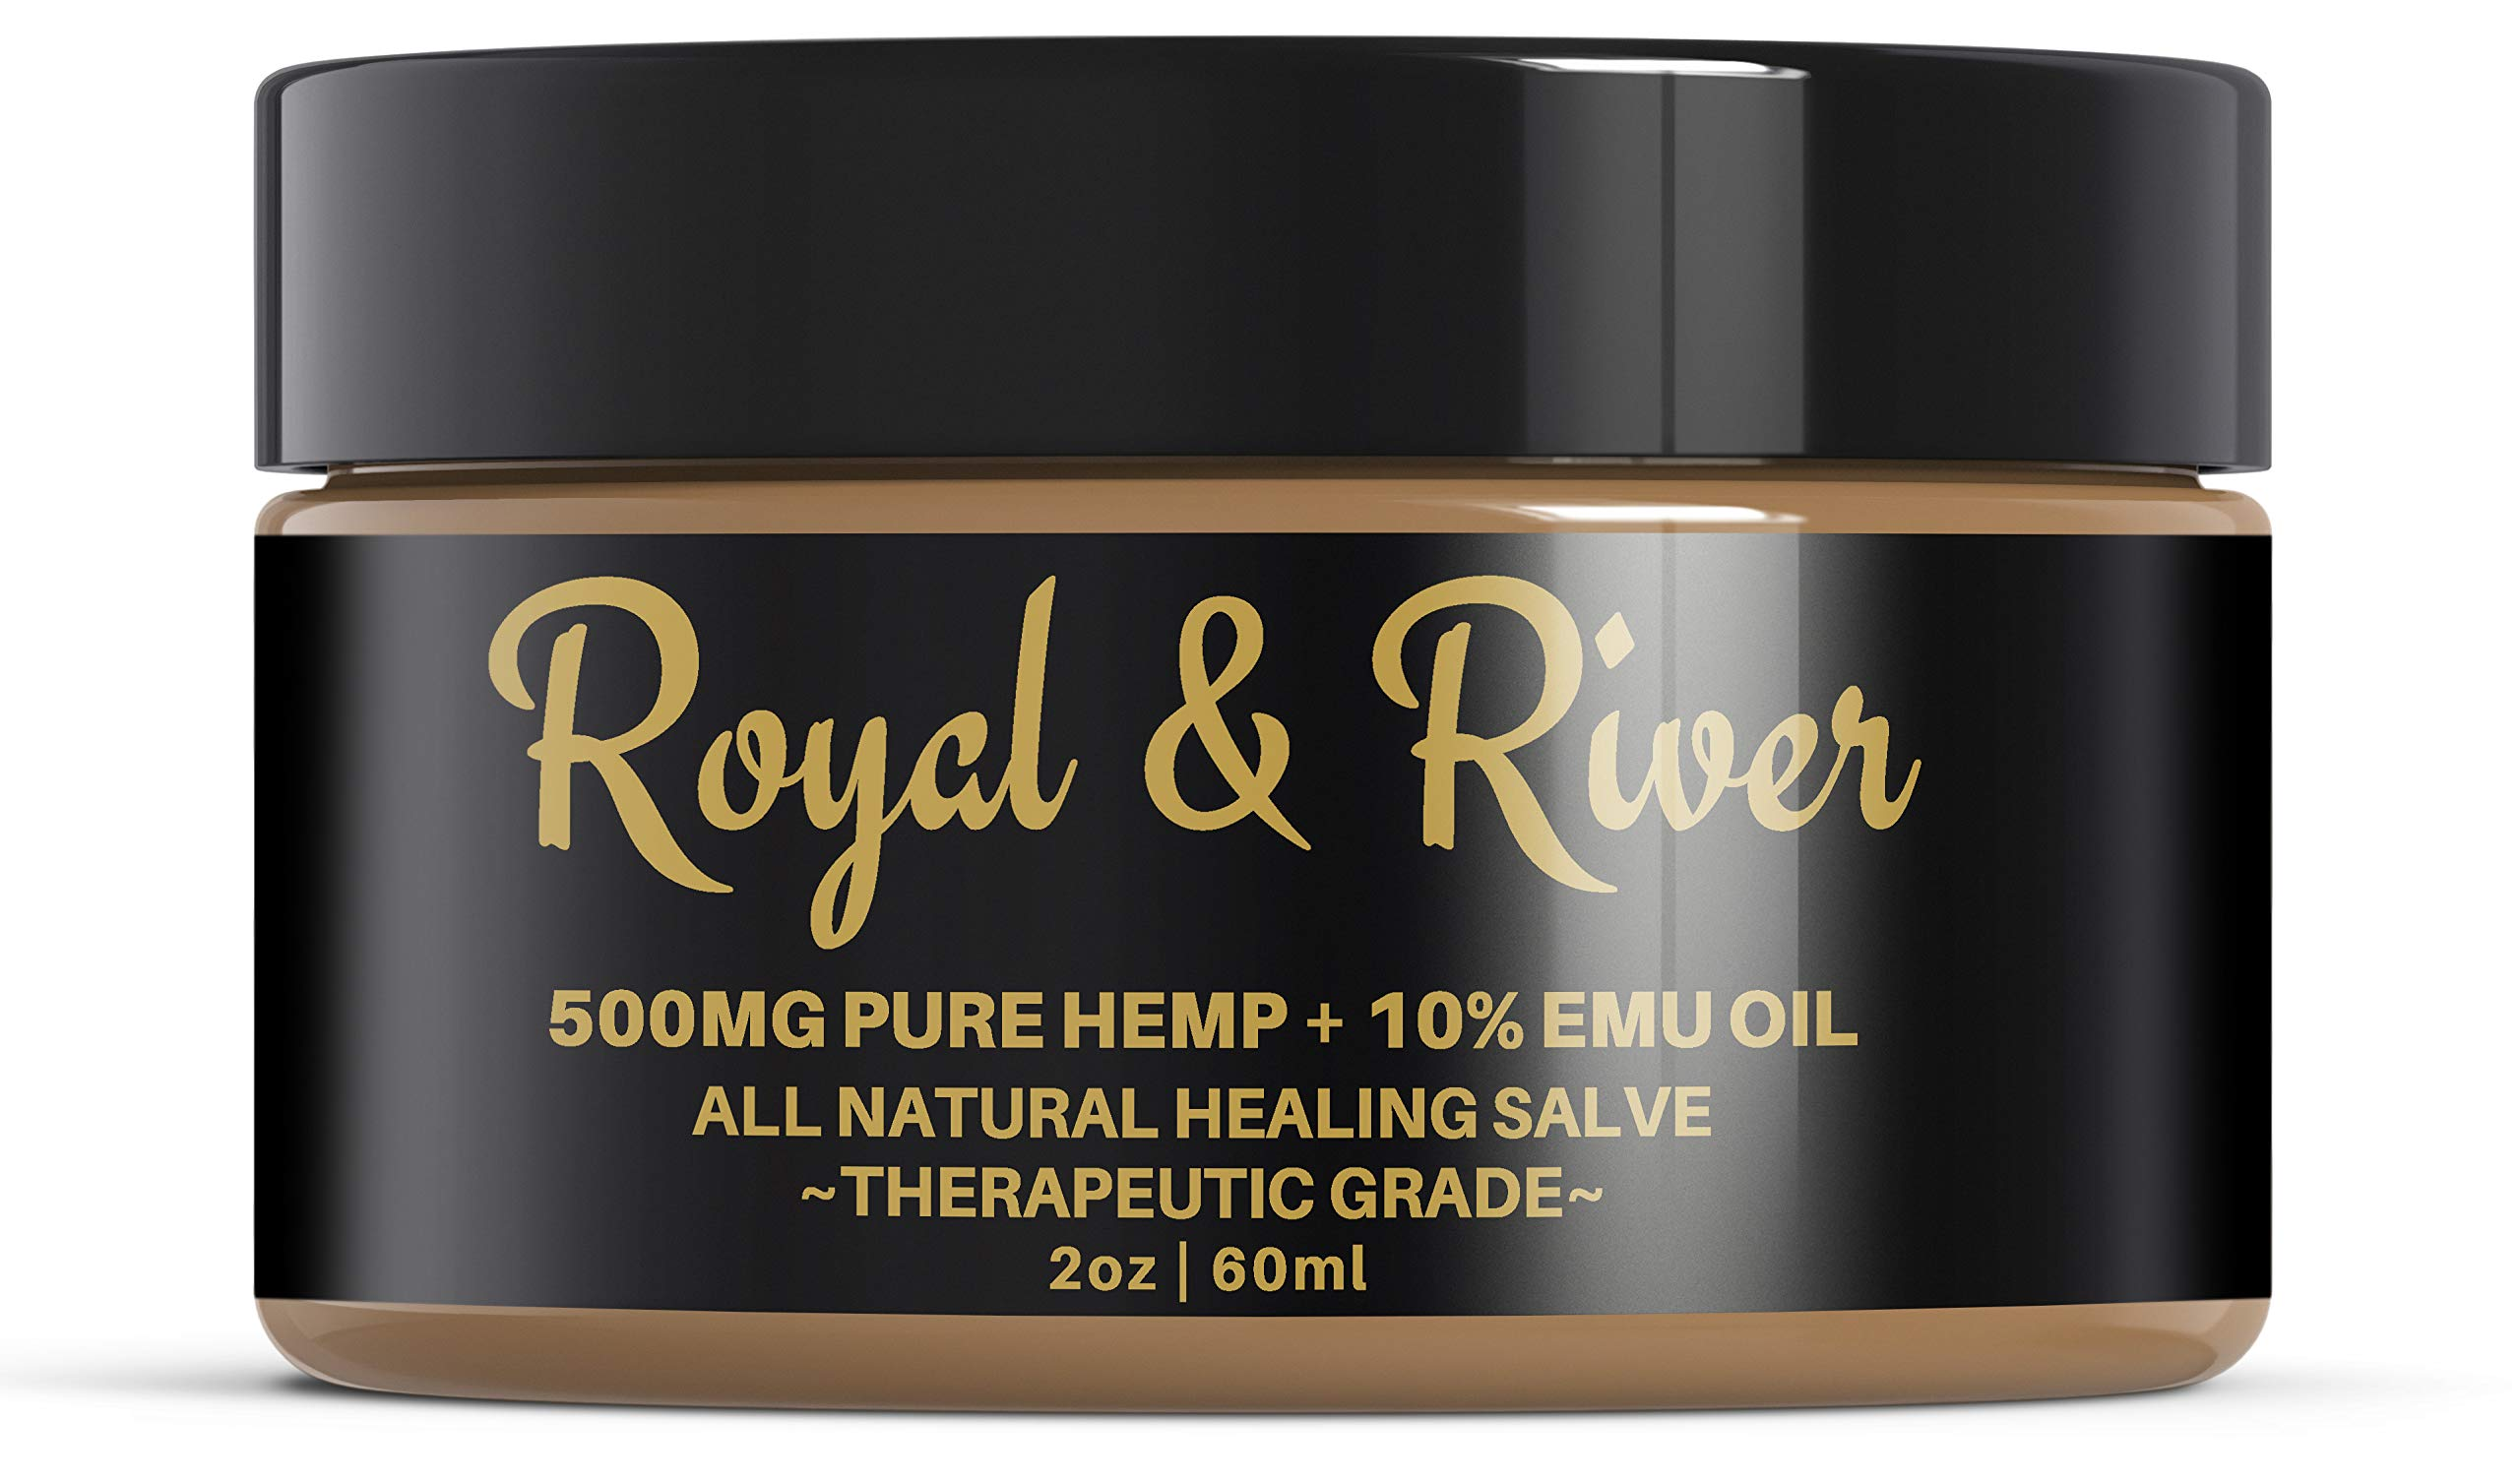 Hemp Pain Cream Salve - 500mg Hemp Extract and 10% Emu Oil -Relieves Inflammation, Muscle, Joint, Knee, Nerves, and Arthritis Pain. 2oz